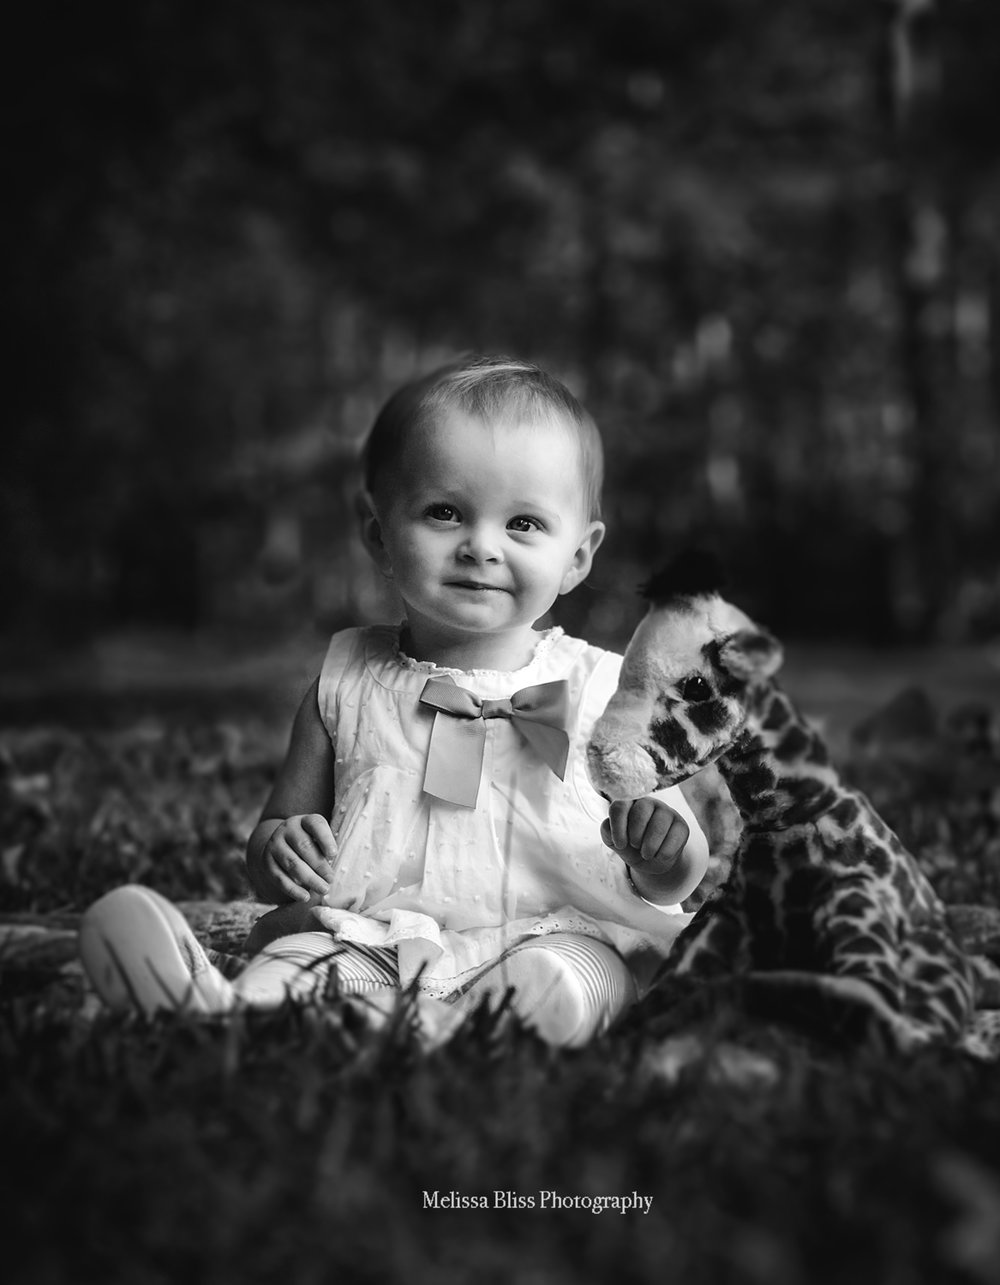 virginia-beach-photographer-one-year-old-portrait-melissa-bliss-photography-norfolk-cheapeake-williamsburg-photographer.jpg